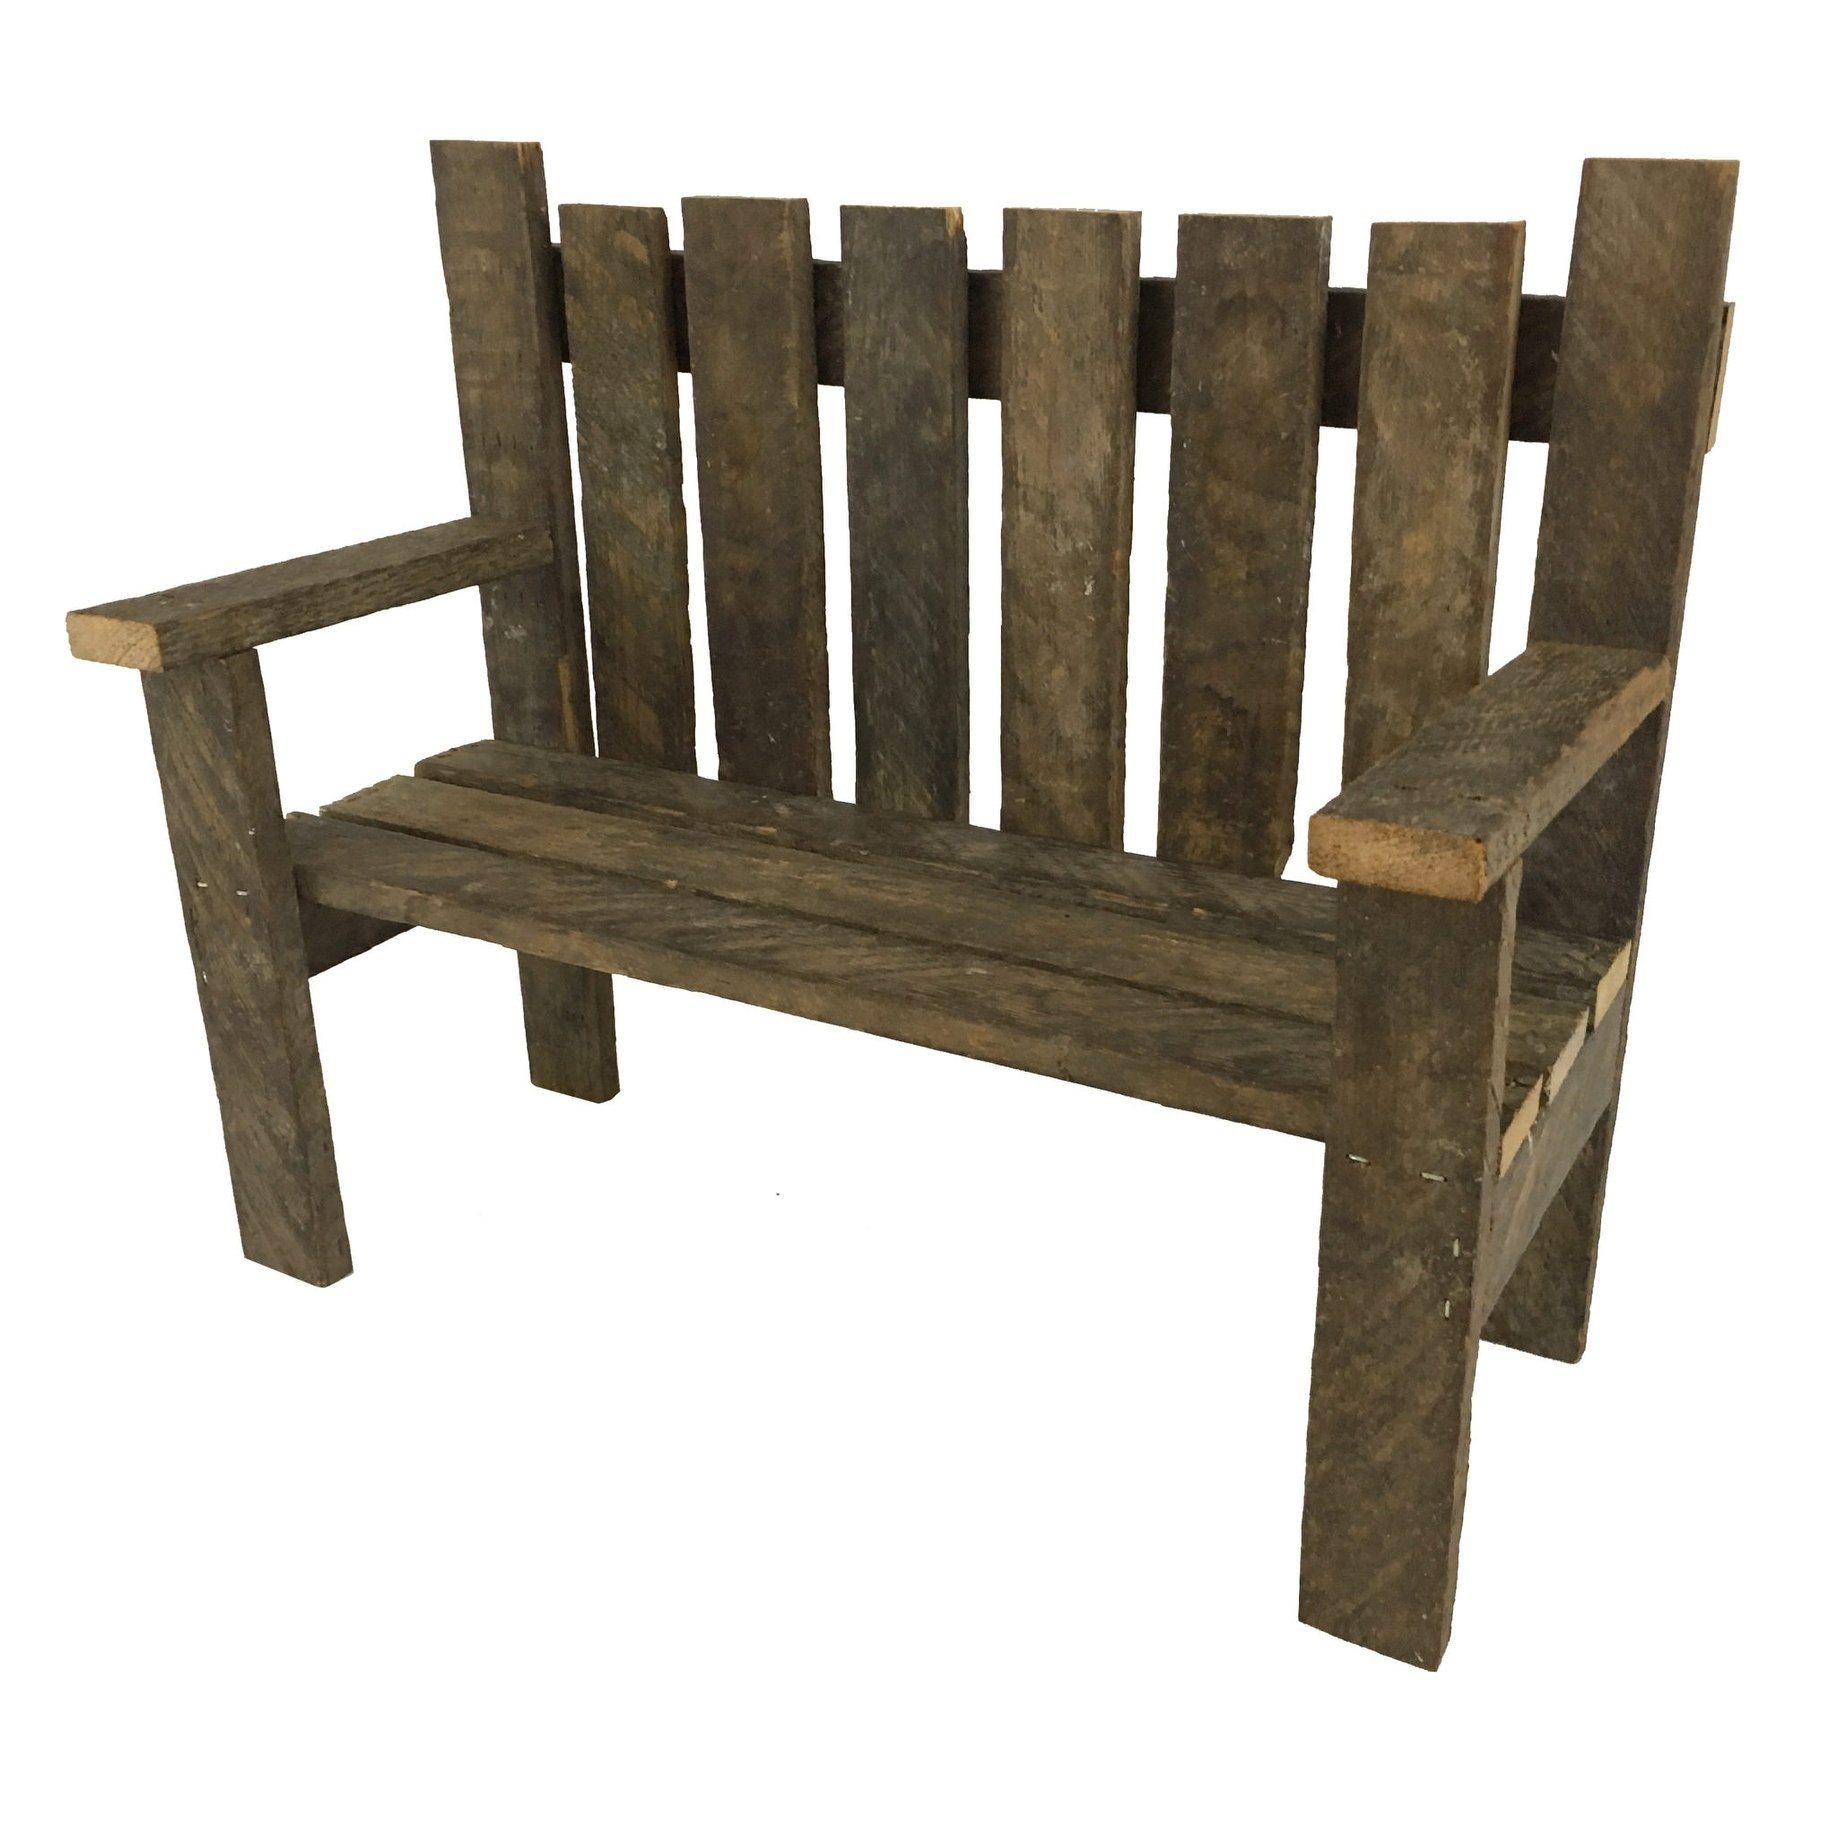 Astonishing Rustic Reclaimed Tobacco Lath Board Small Decorative Garden Dailytribune Chair Design For Home Dailytribuneorg